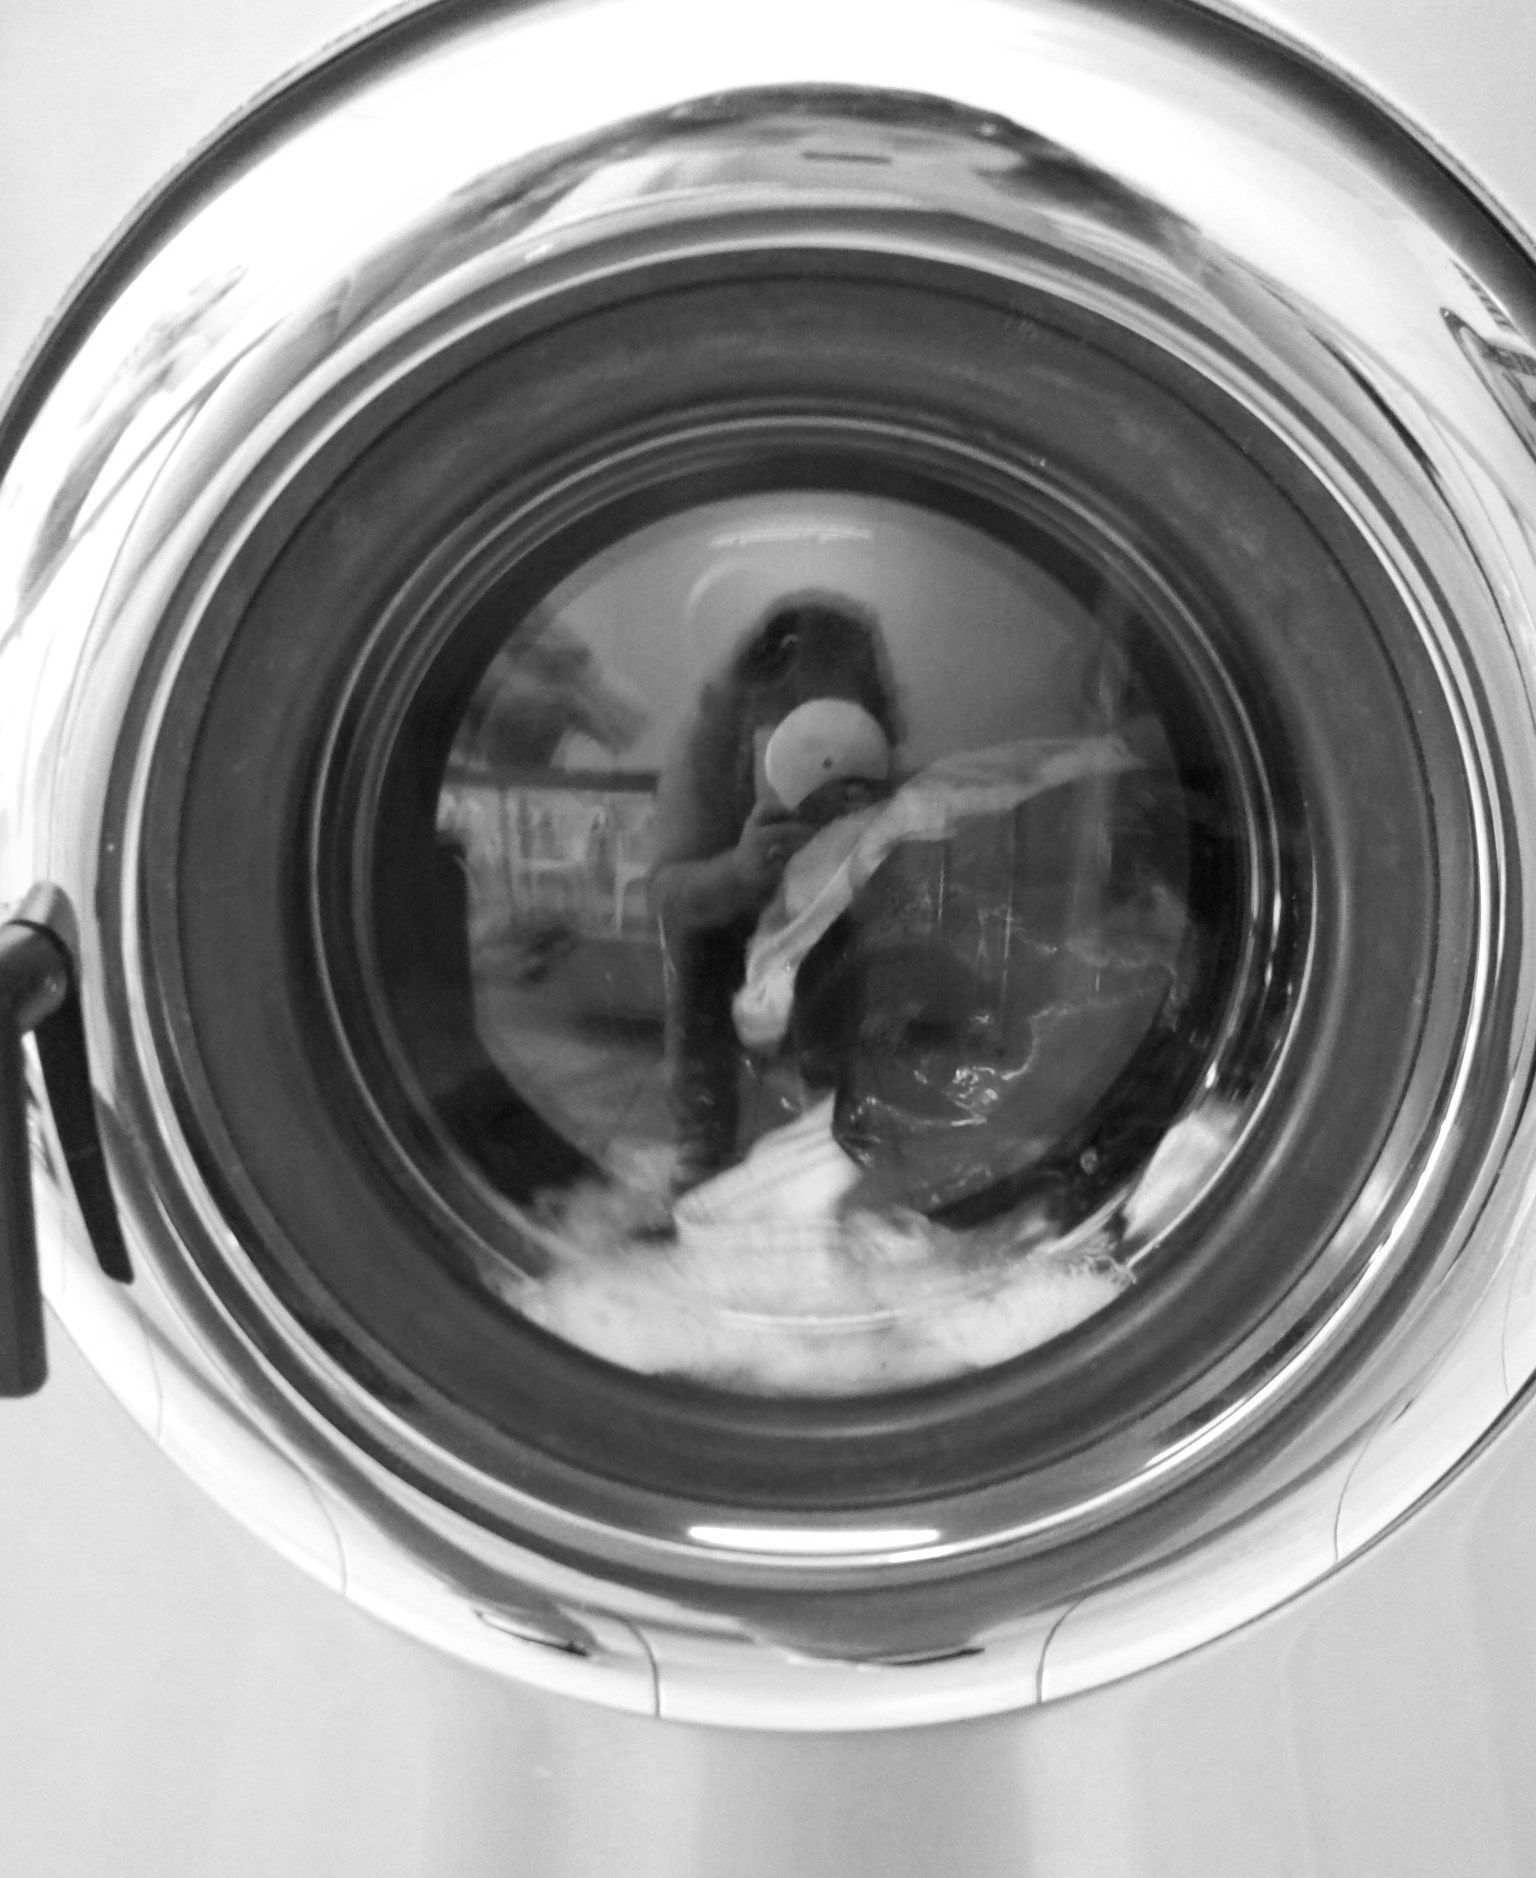 Dexter magic laundry art shots in black and white